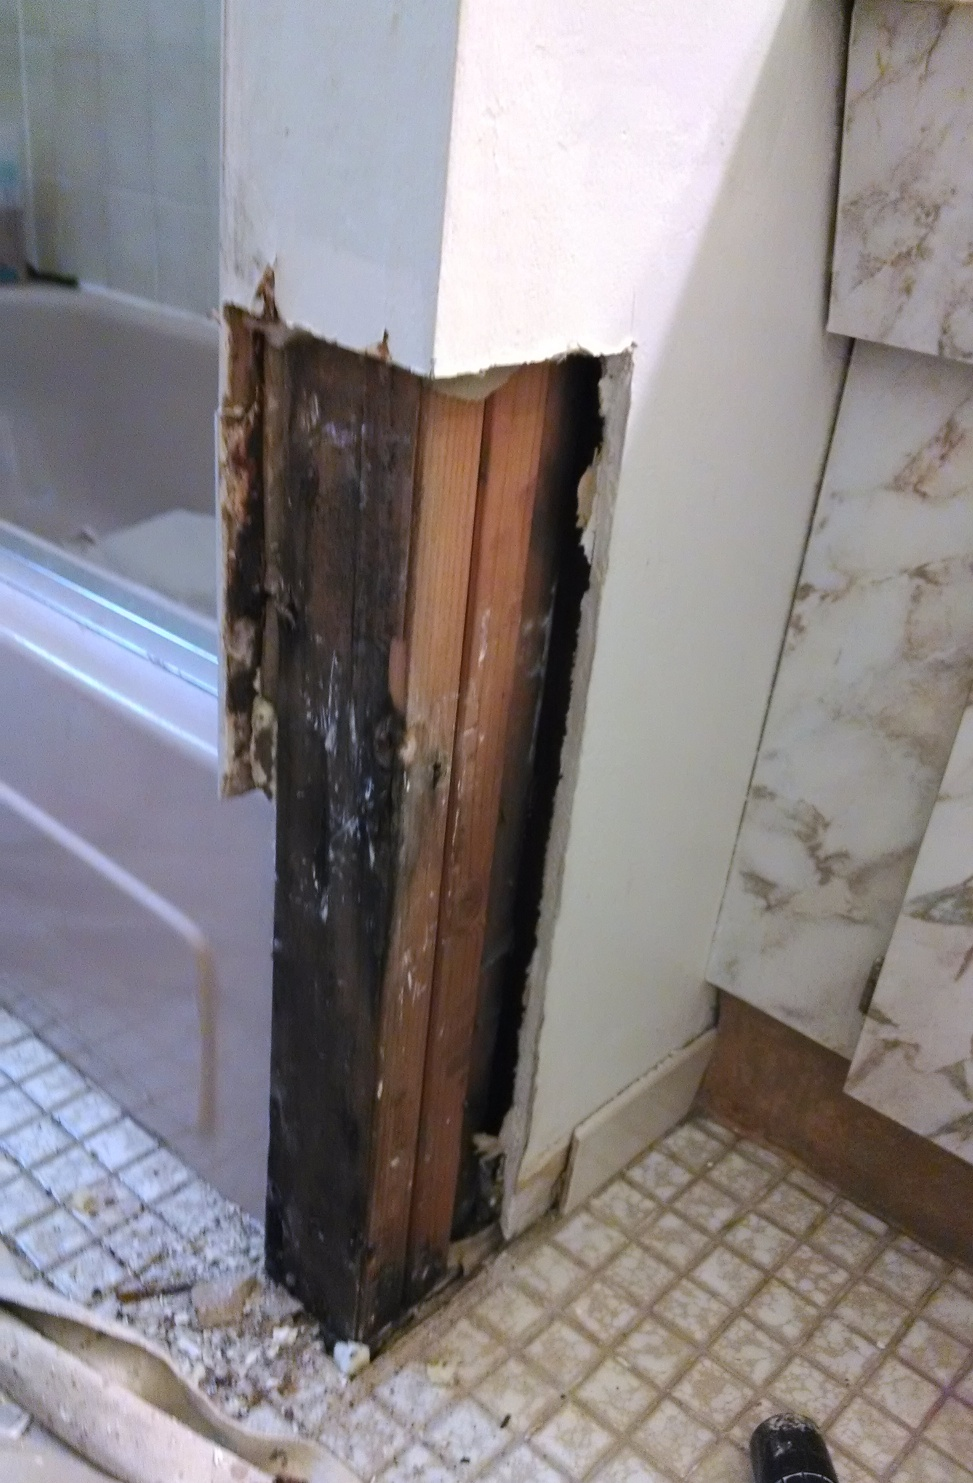 How To Remove Black Mold Behind Walls In Bathroom